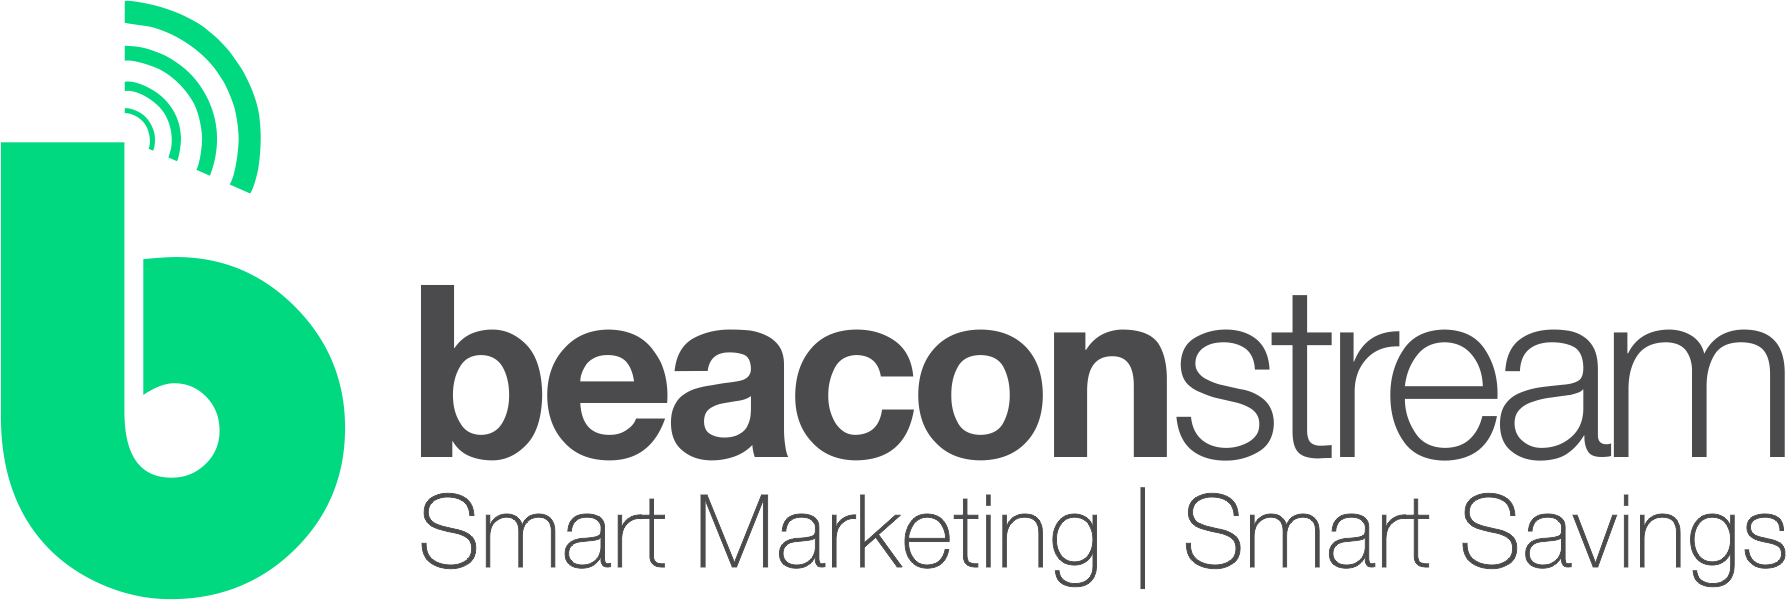 beaconstream_logo